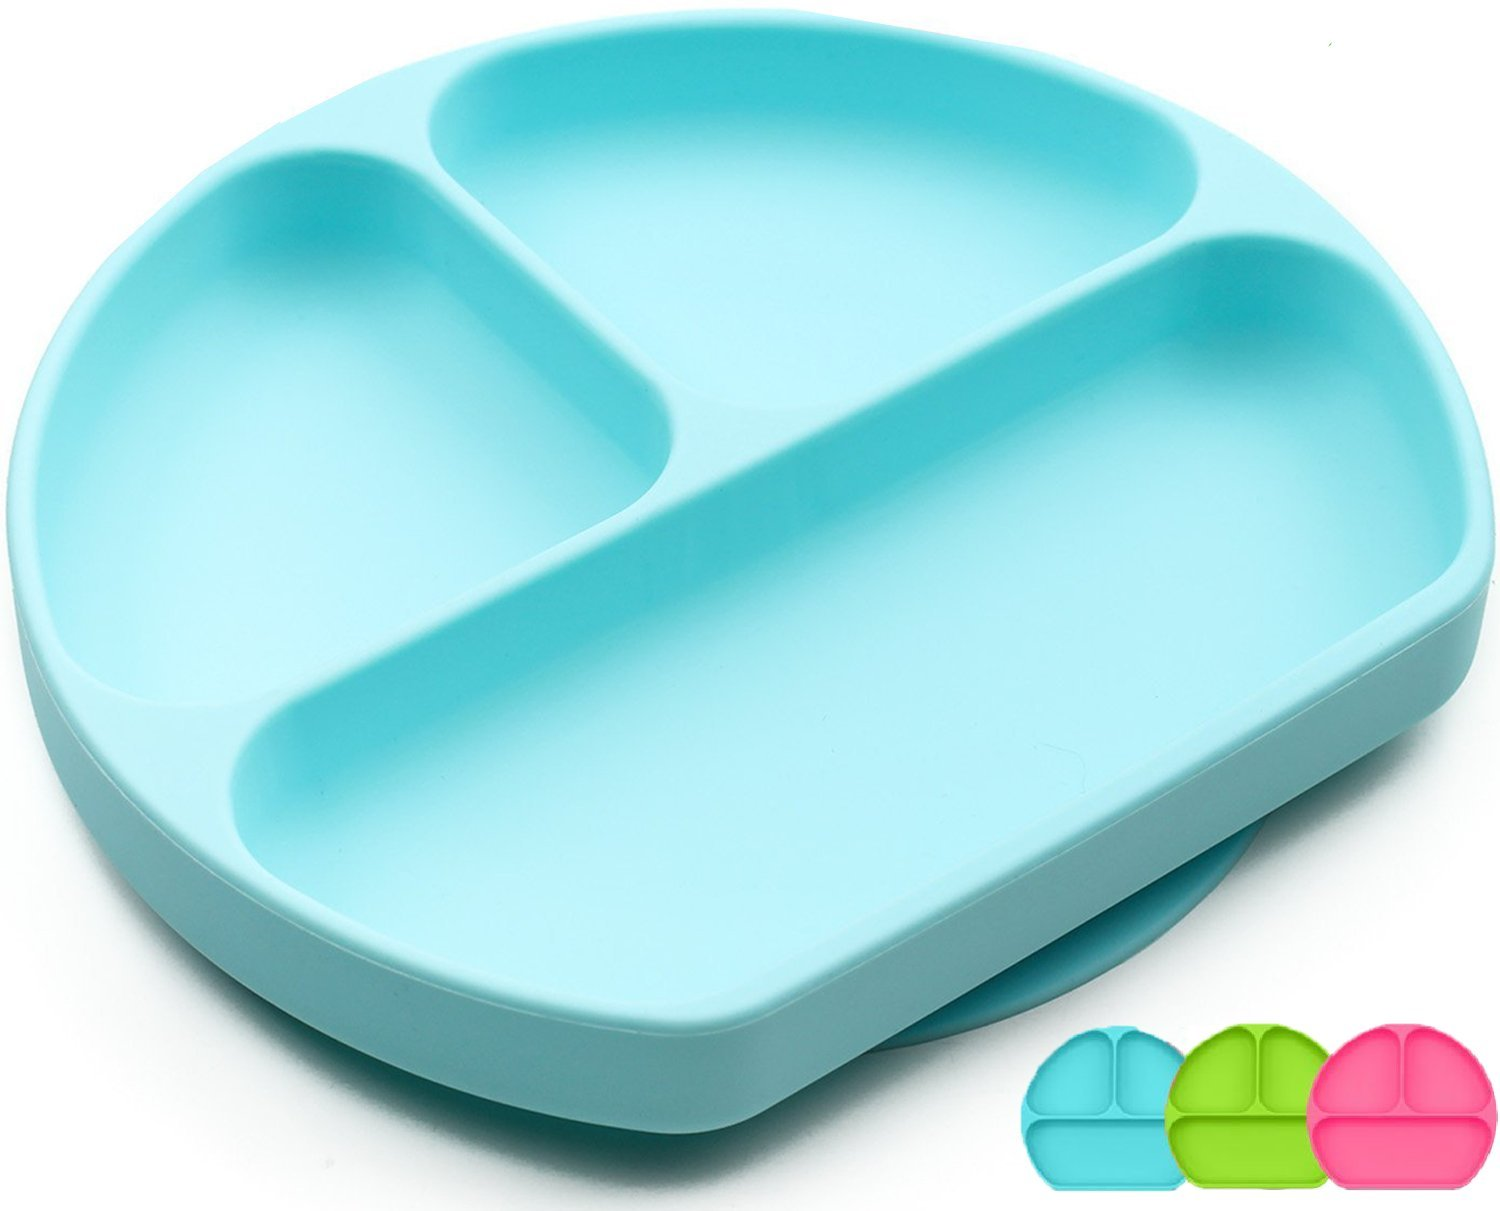 Amazon.com : SiliKong Silicone Suction Plate for Toddlers ...